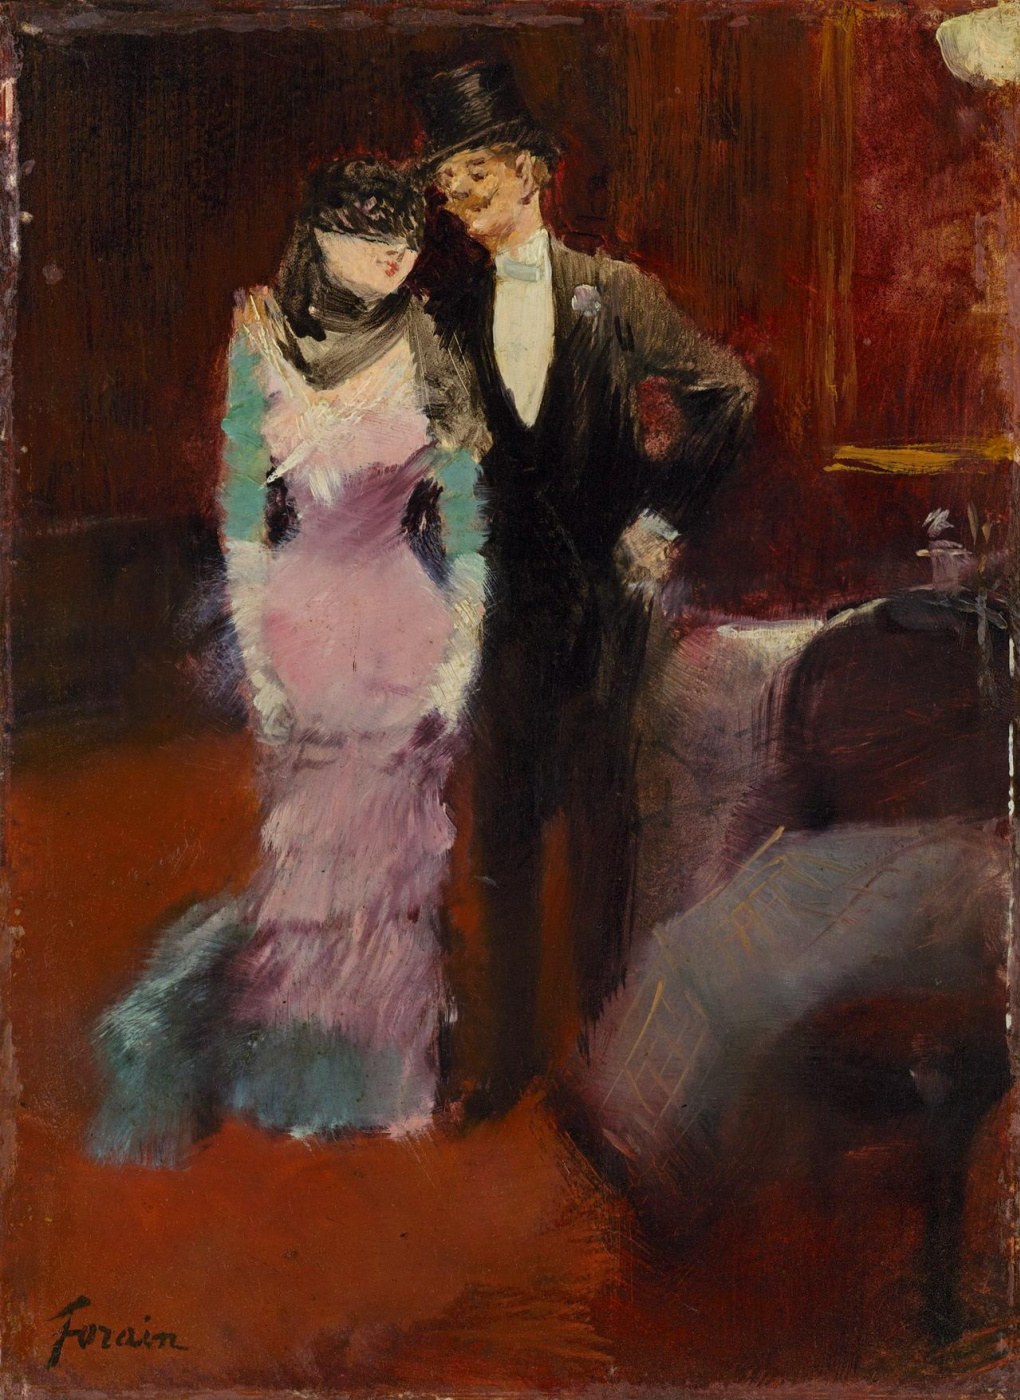 Jean-Louis Foren. Exit from the masquerade